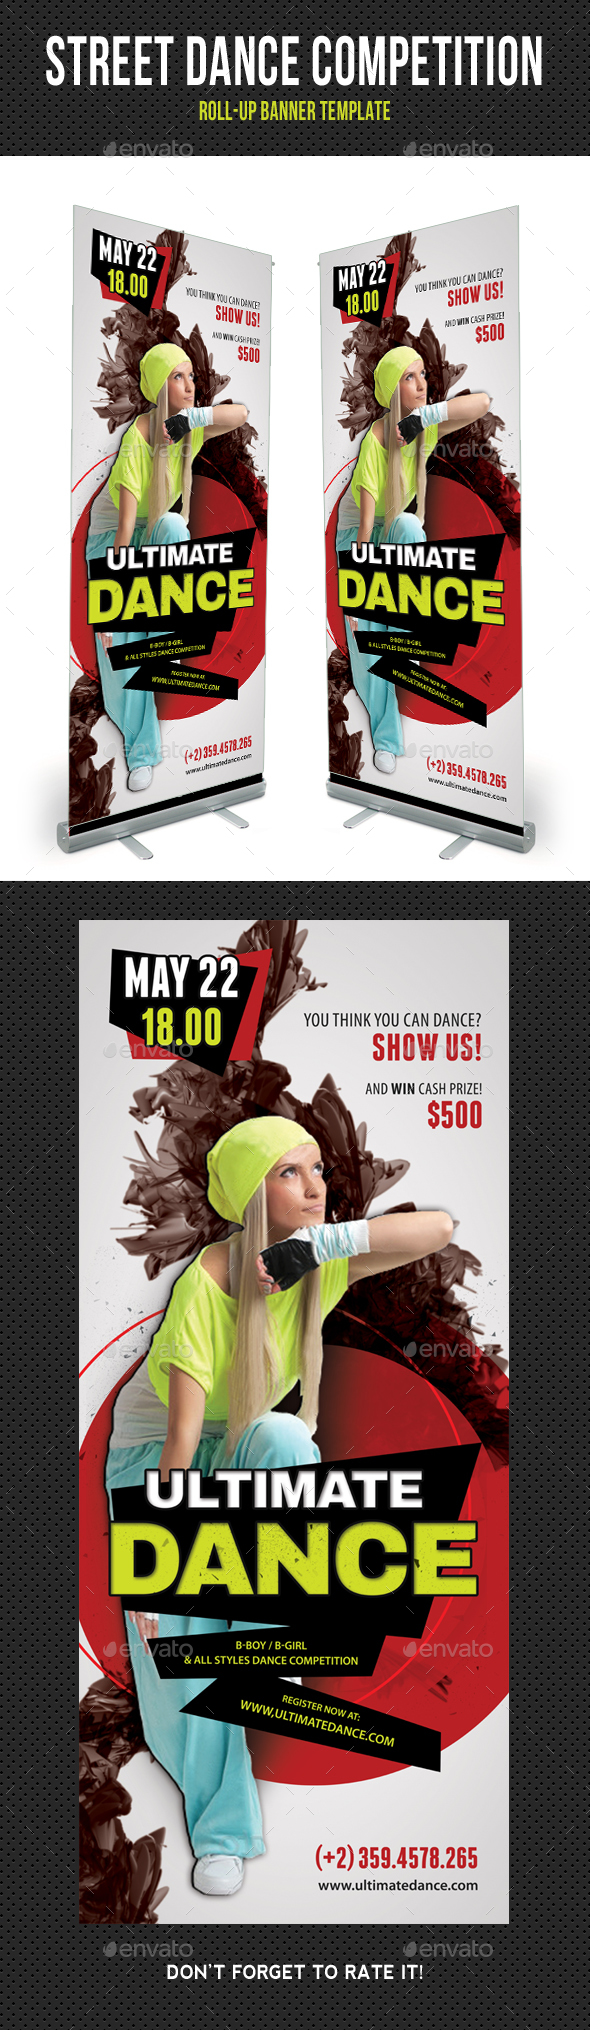 Street Dance Competition Banner 02 - Signage Print Templates